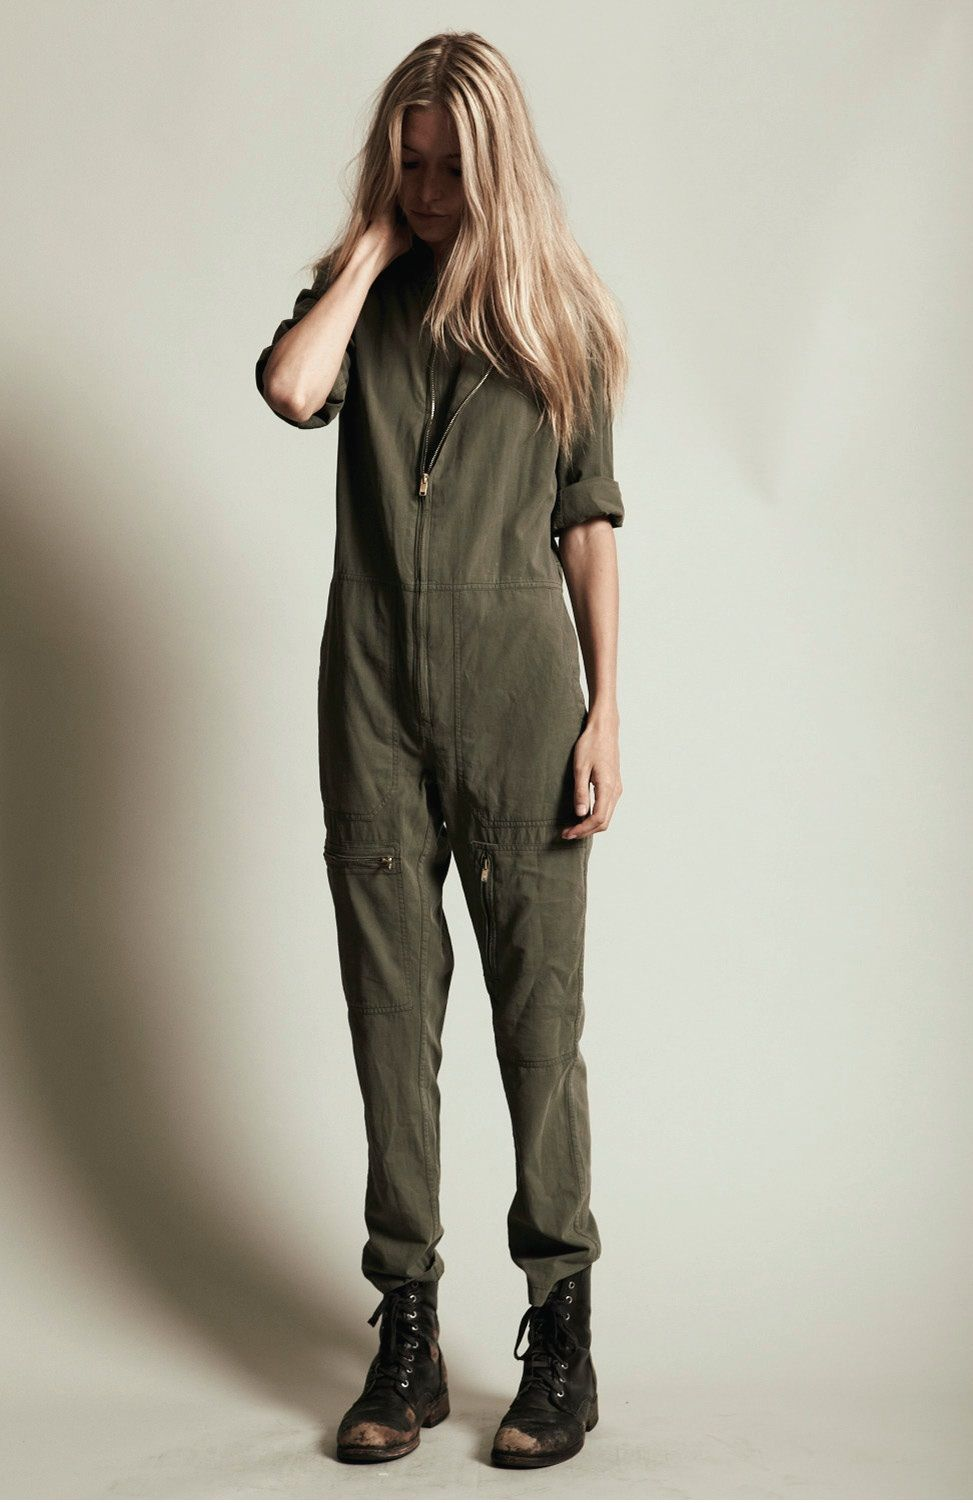 NLST Flightsuit now available at shopheist.com